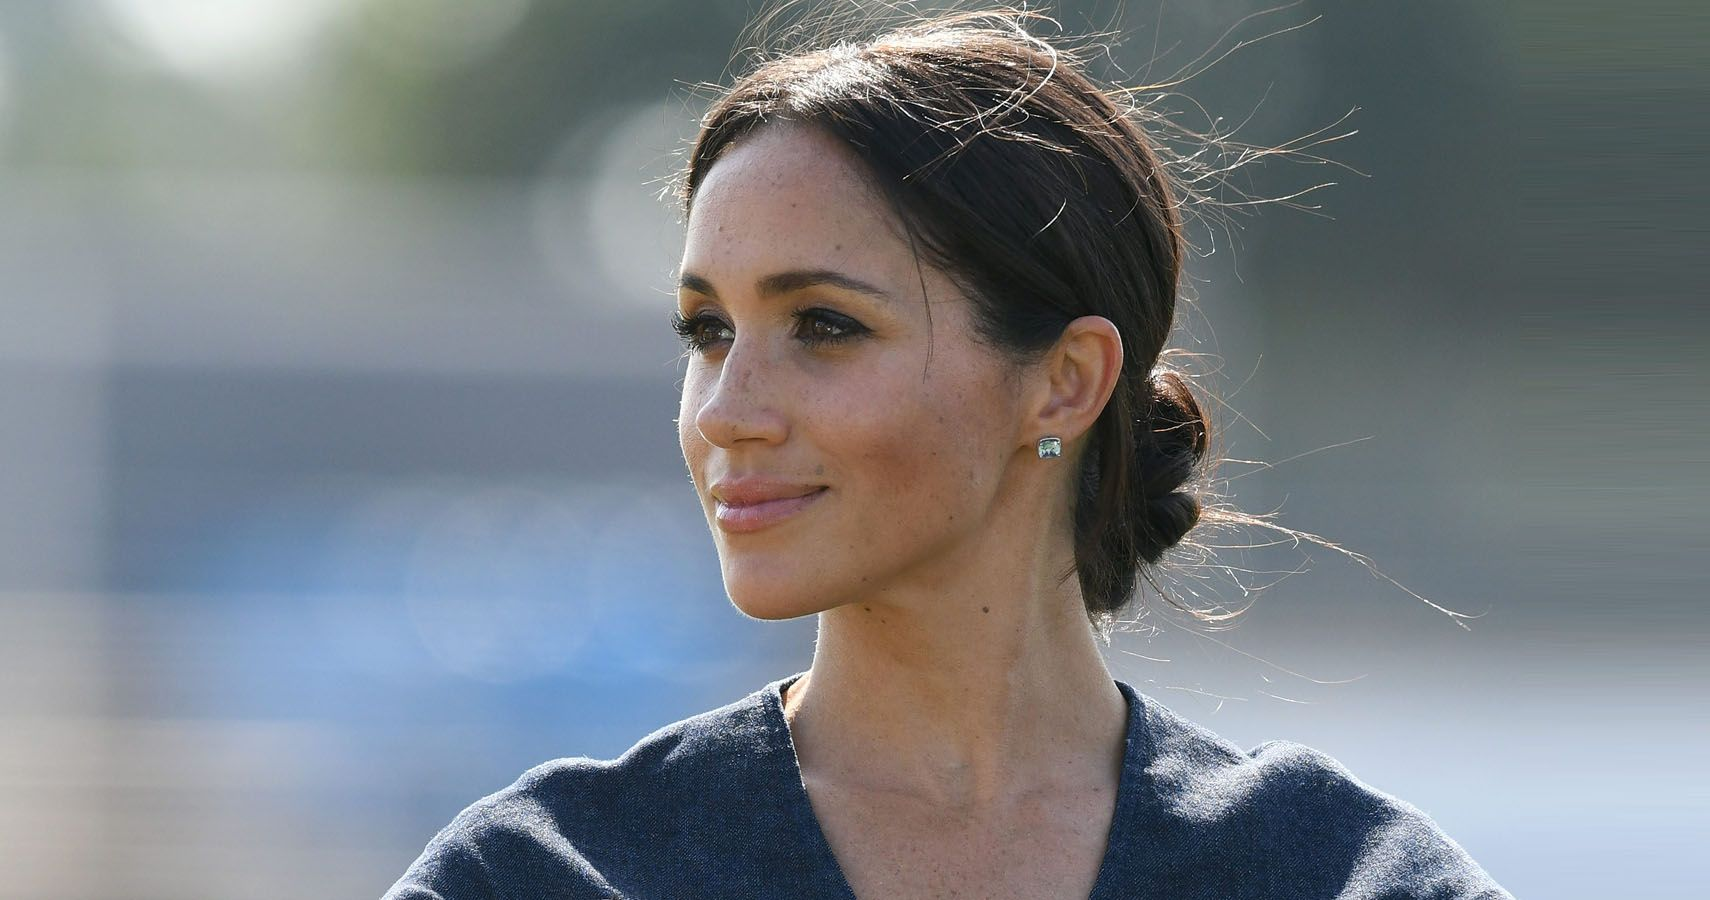 Royalty, Suits, Her: The Amazing Life Of Meghan Markle